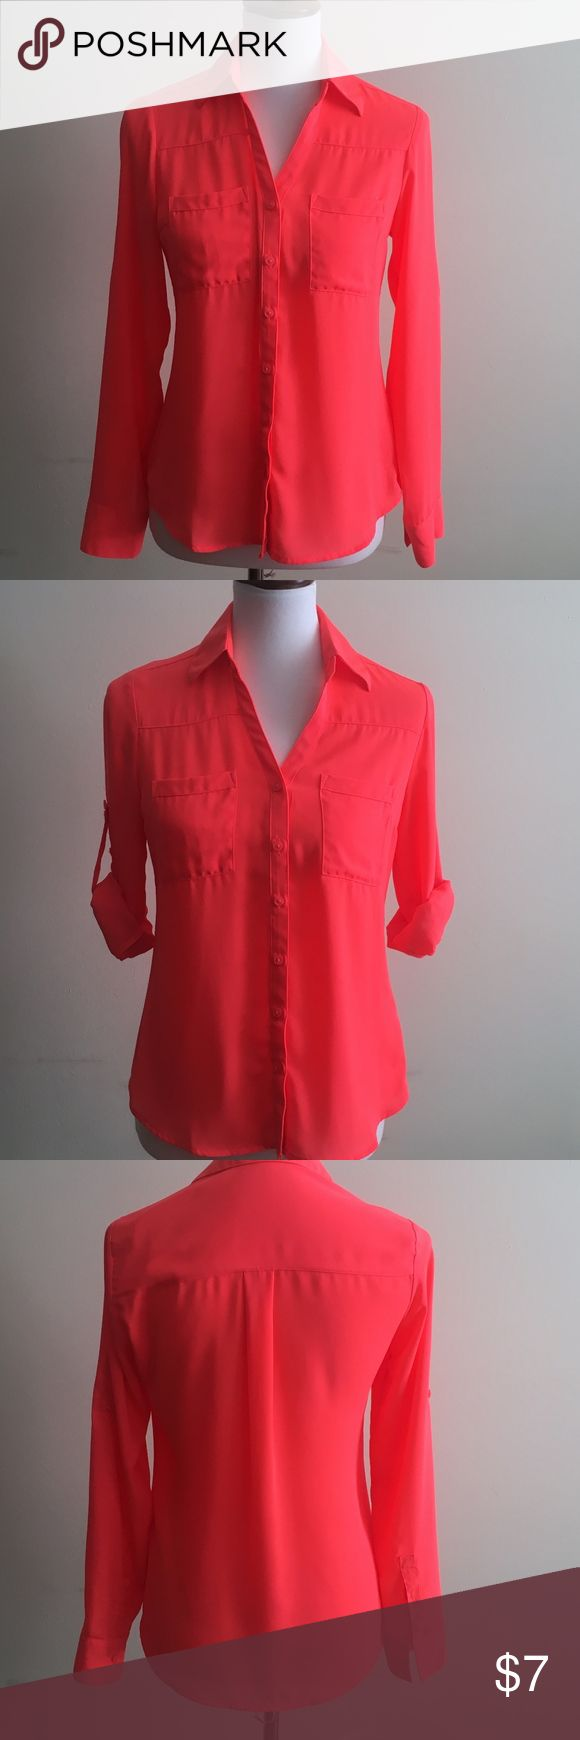 EUC EXPRESS Convertible Sleeve Portofino Shirt In excellent used condition; only worn a couple of times. A merger of classic shirt confidence and effortlessly sexy style in luxe, semi-sheer crepe, this slim cut Portofino Shirt by Express is tailored for a modern fit. Tucks perfectly into a pencil skirt or jean. Color: Hot coral pink. Size: XS/TP. 100% polyester. Machine washable. Express Tops Blouses